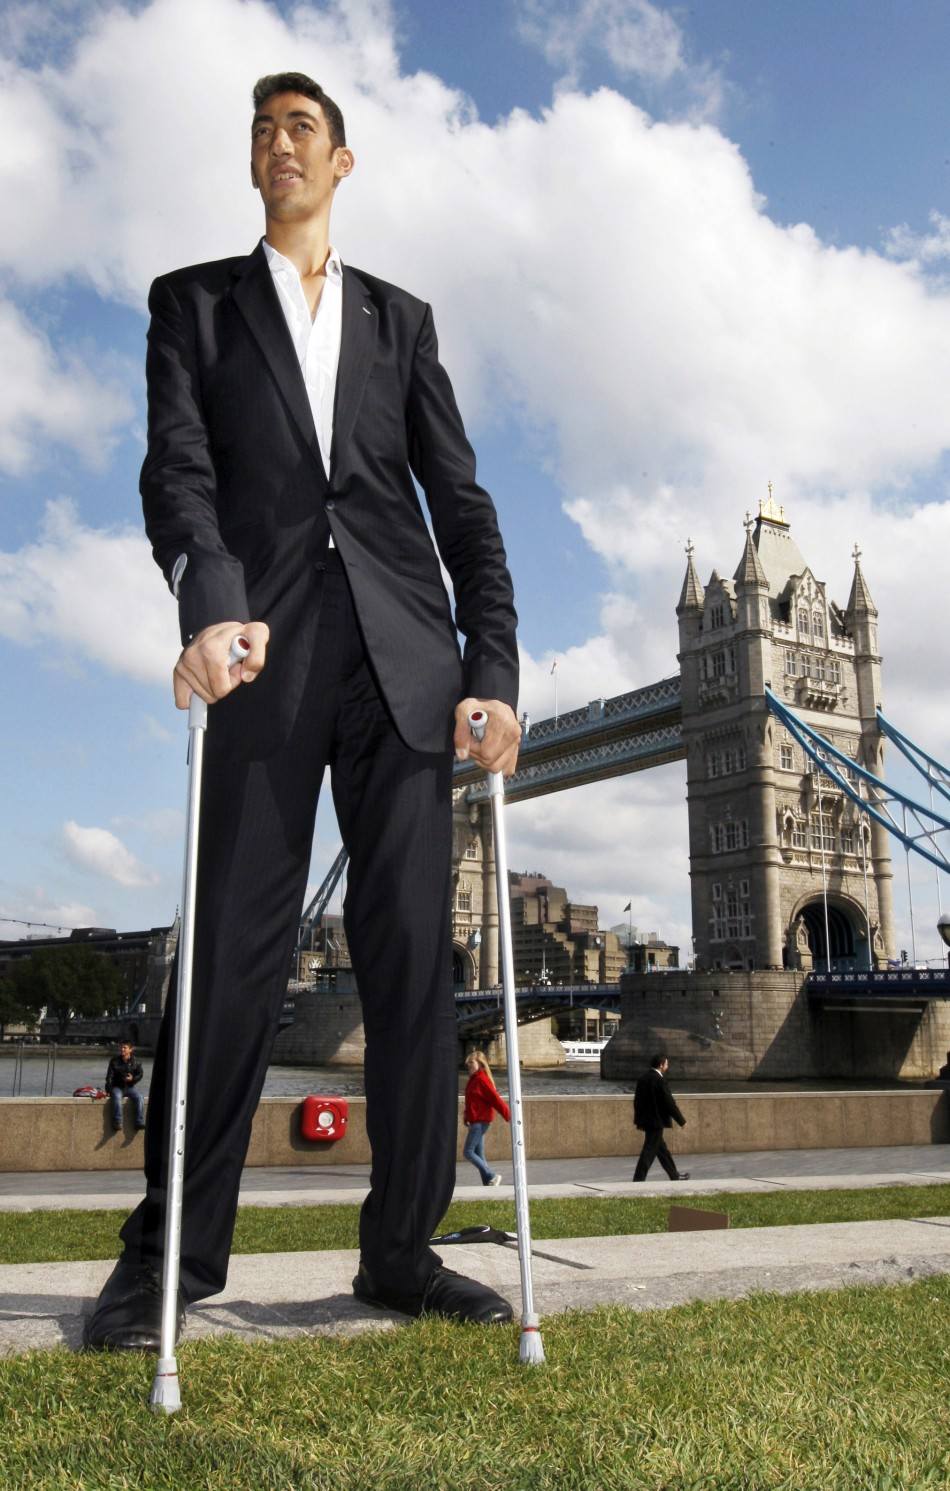 The Worlds Tallest Man Stopped Growing